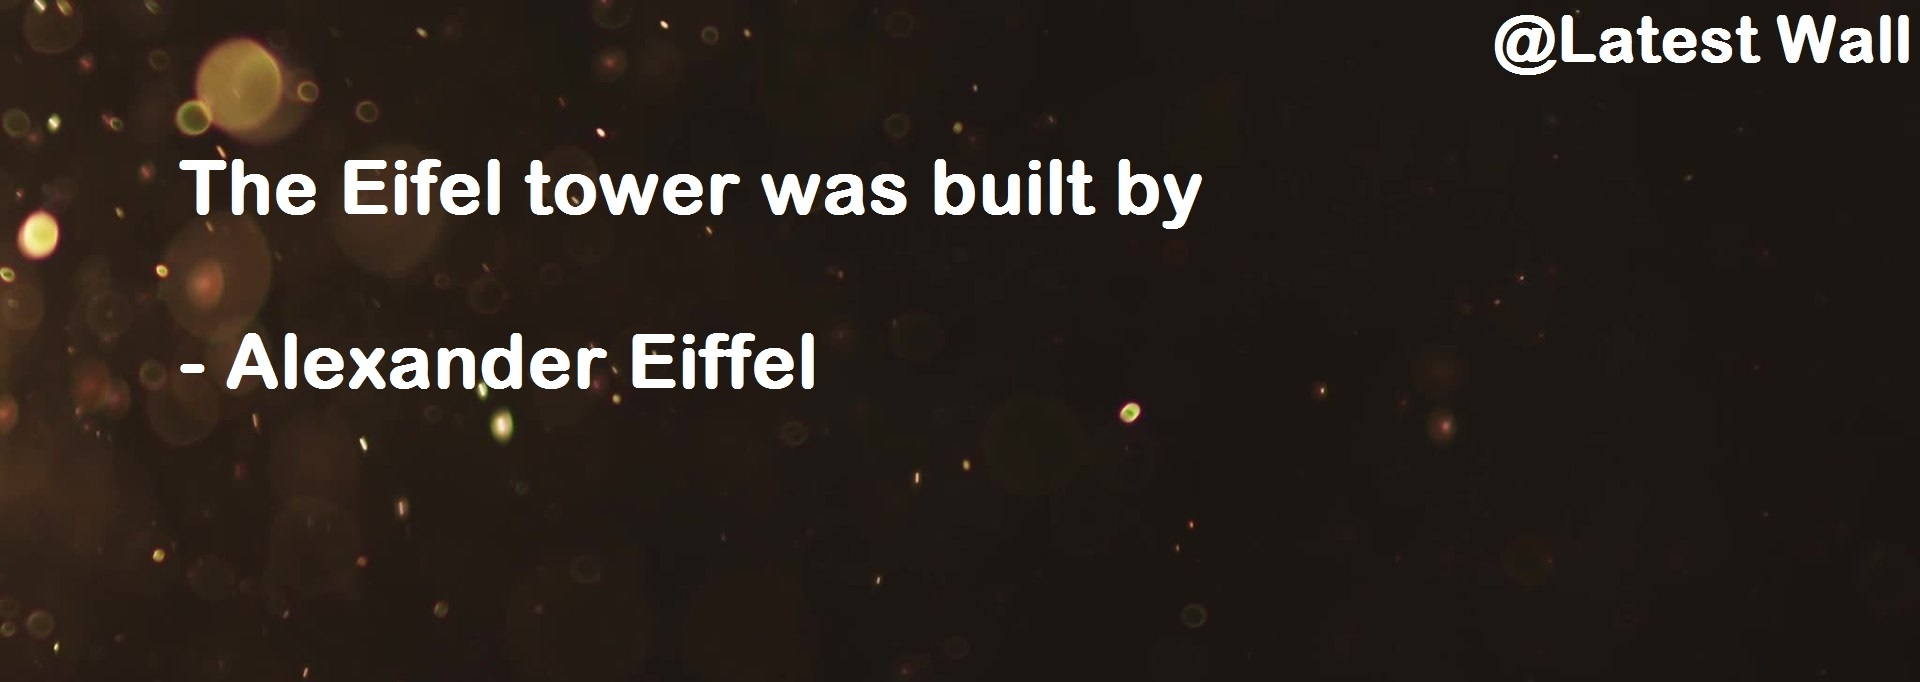 The Eifel tower was built by